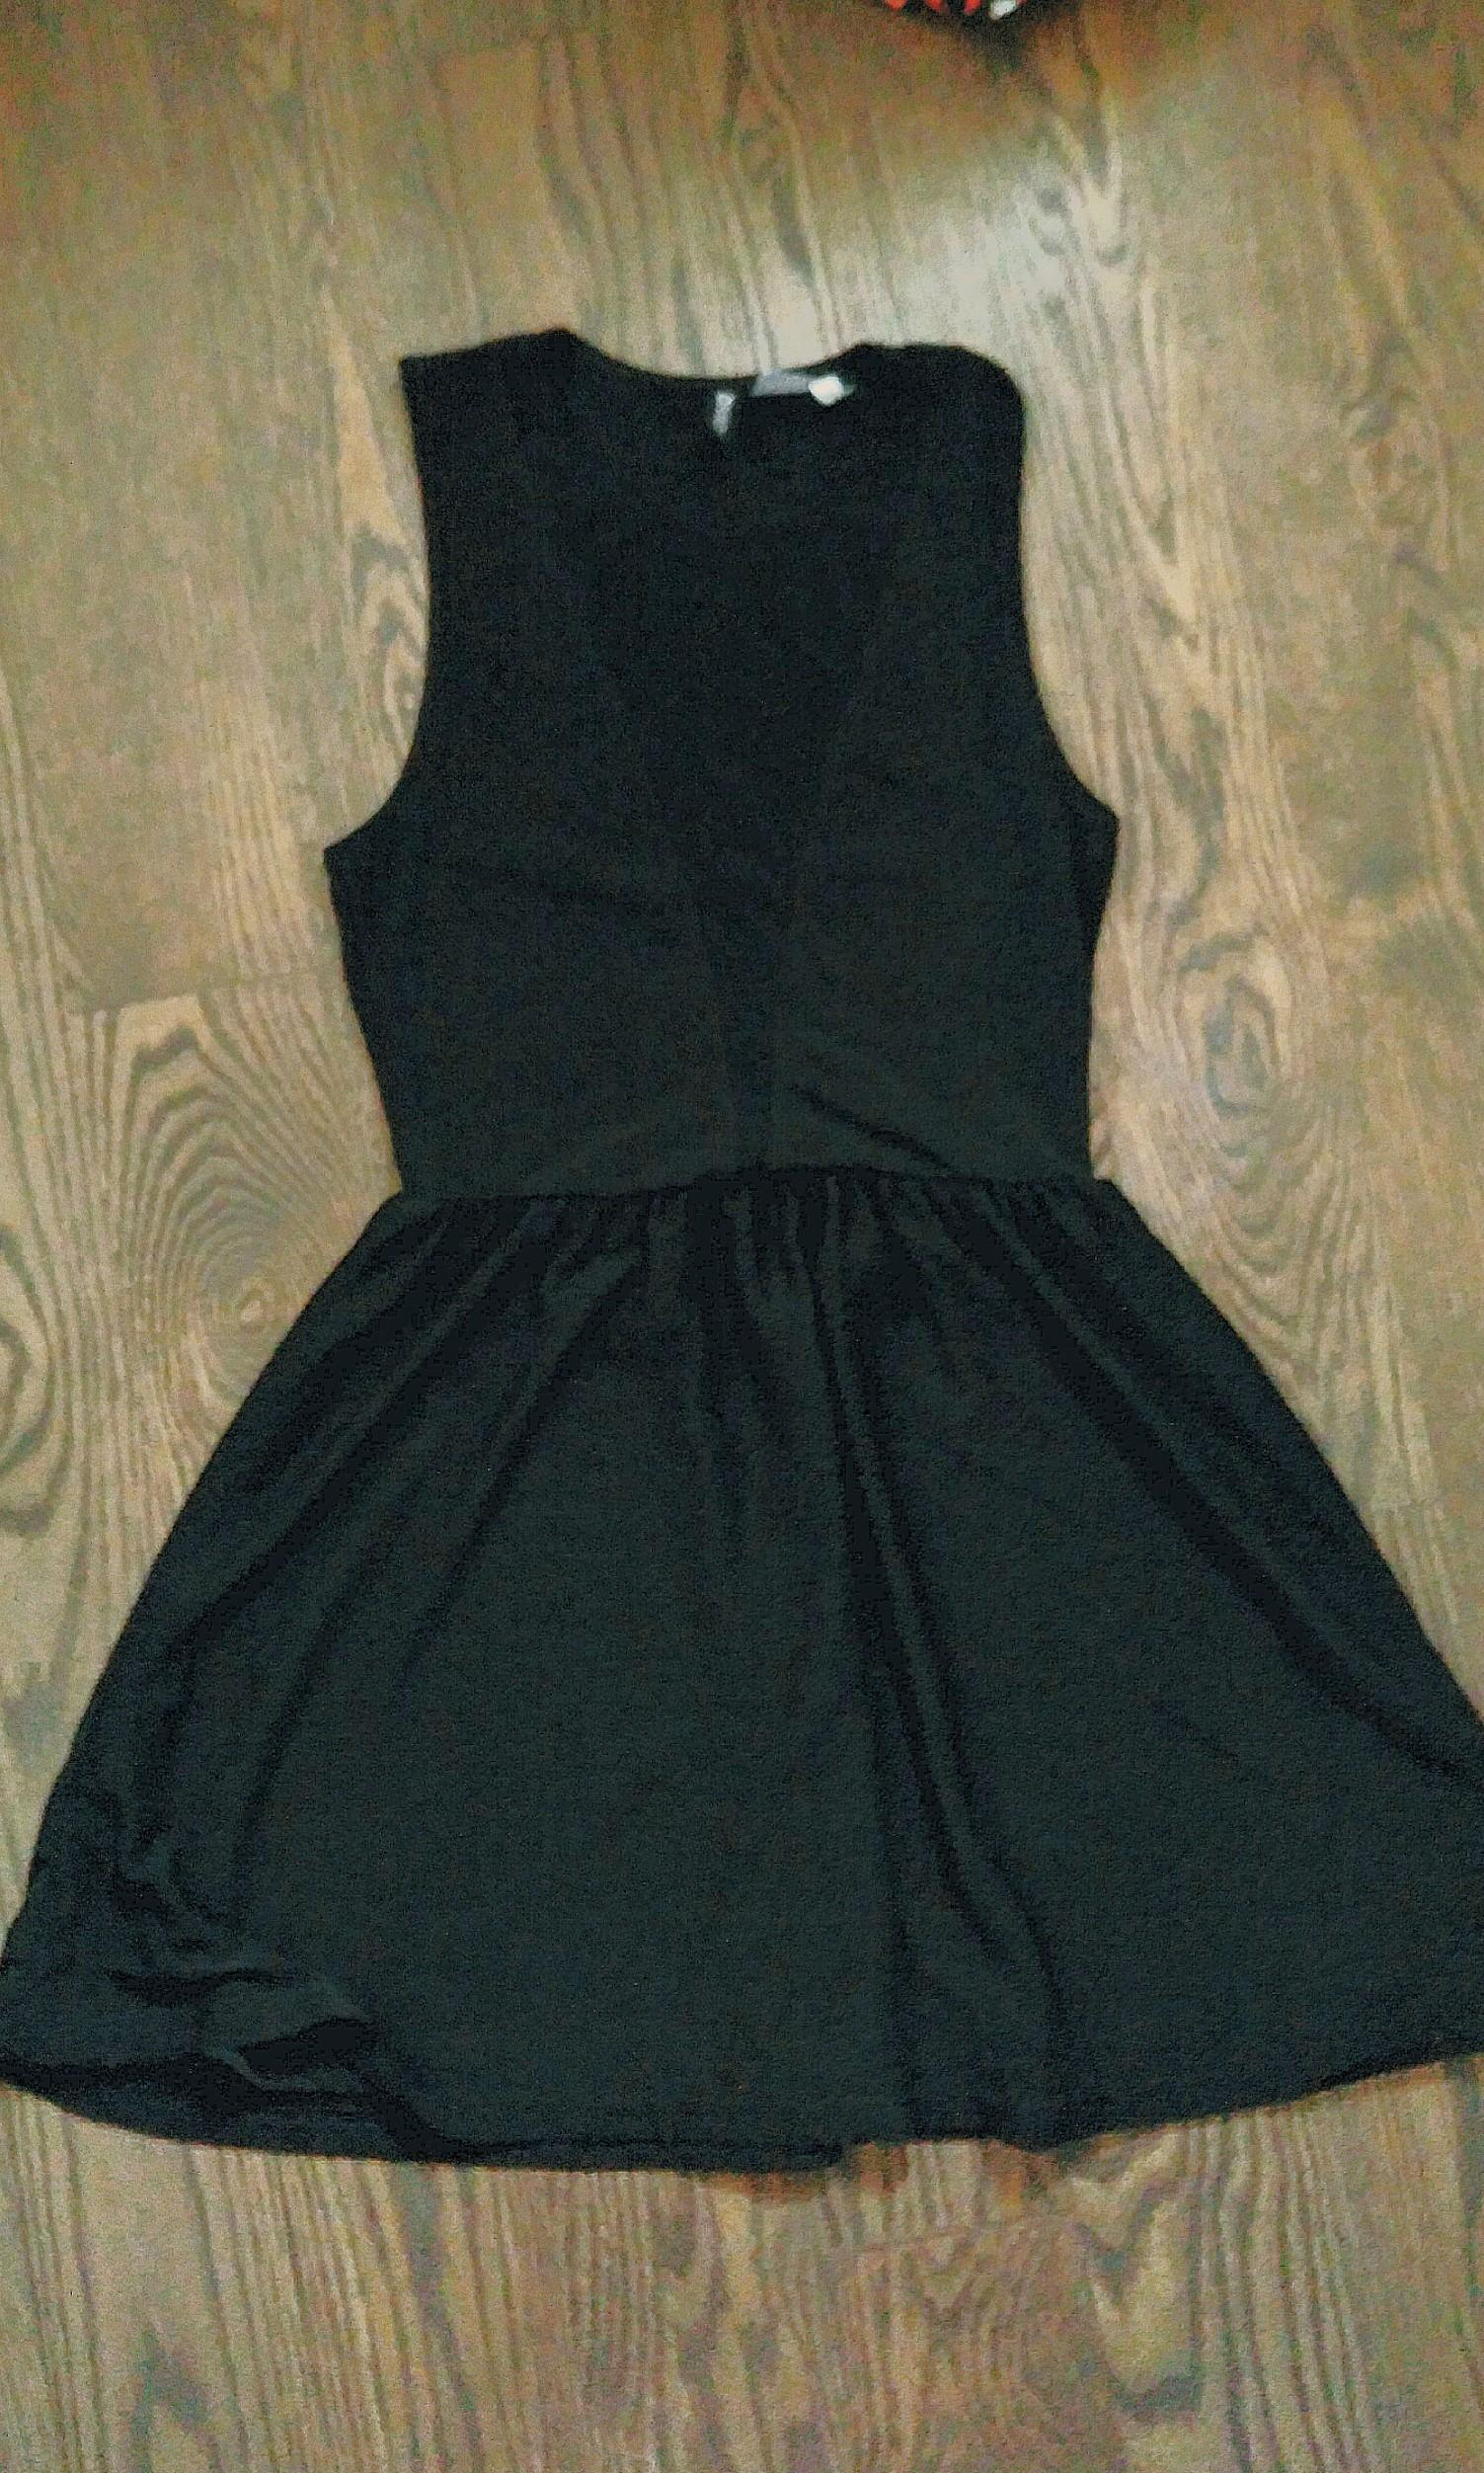 Black dress with mesh details from H&M